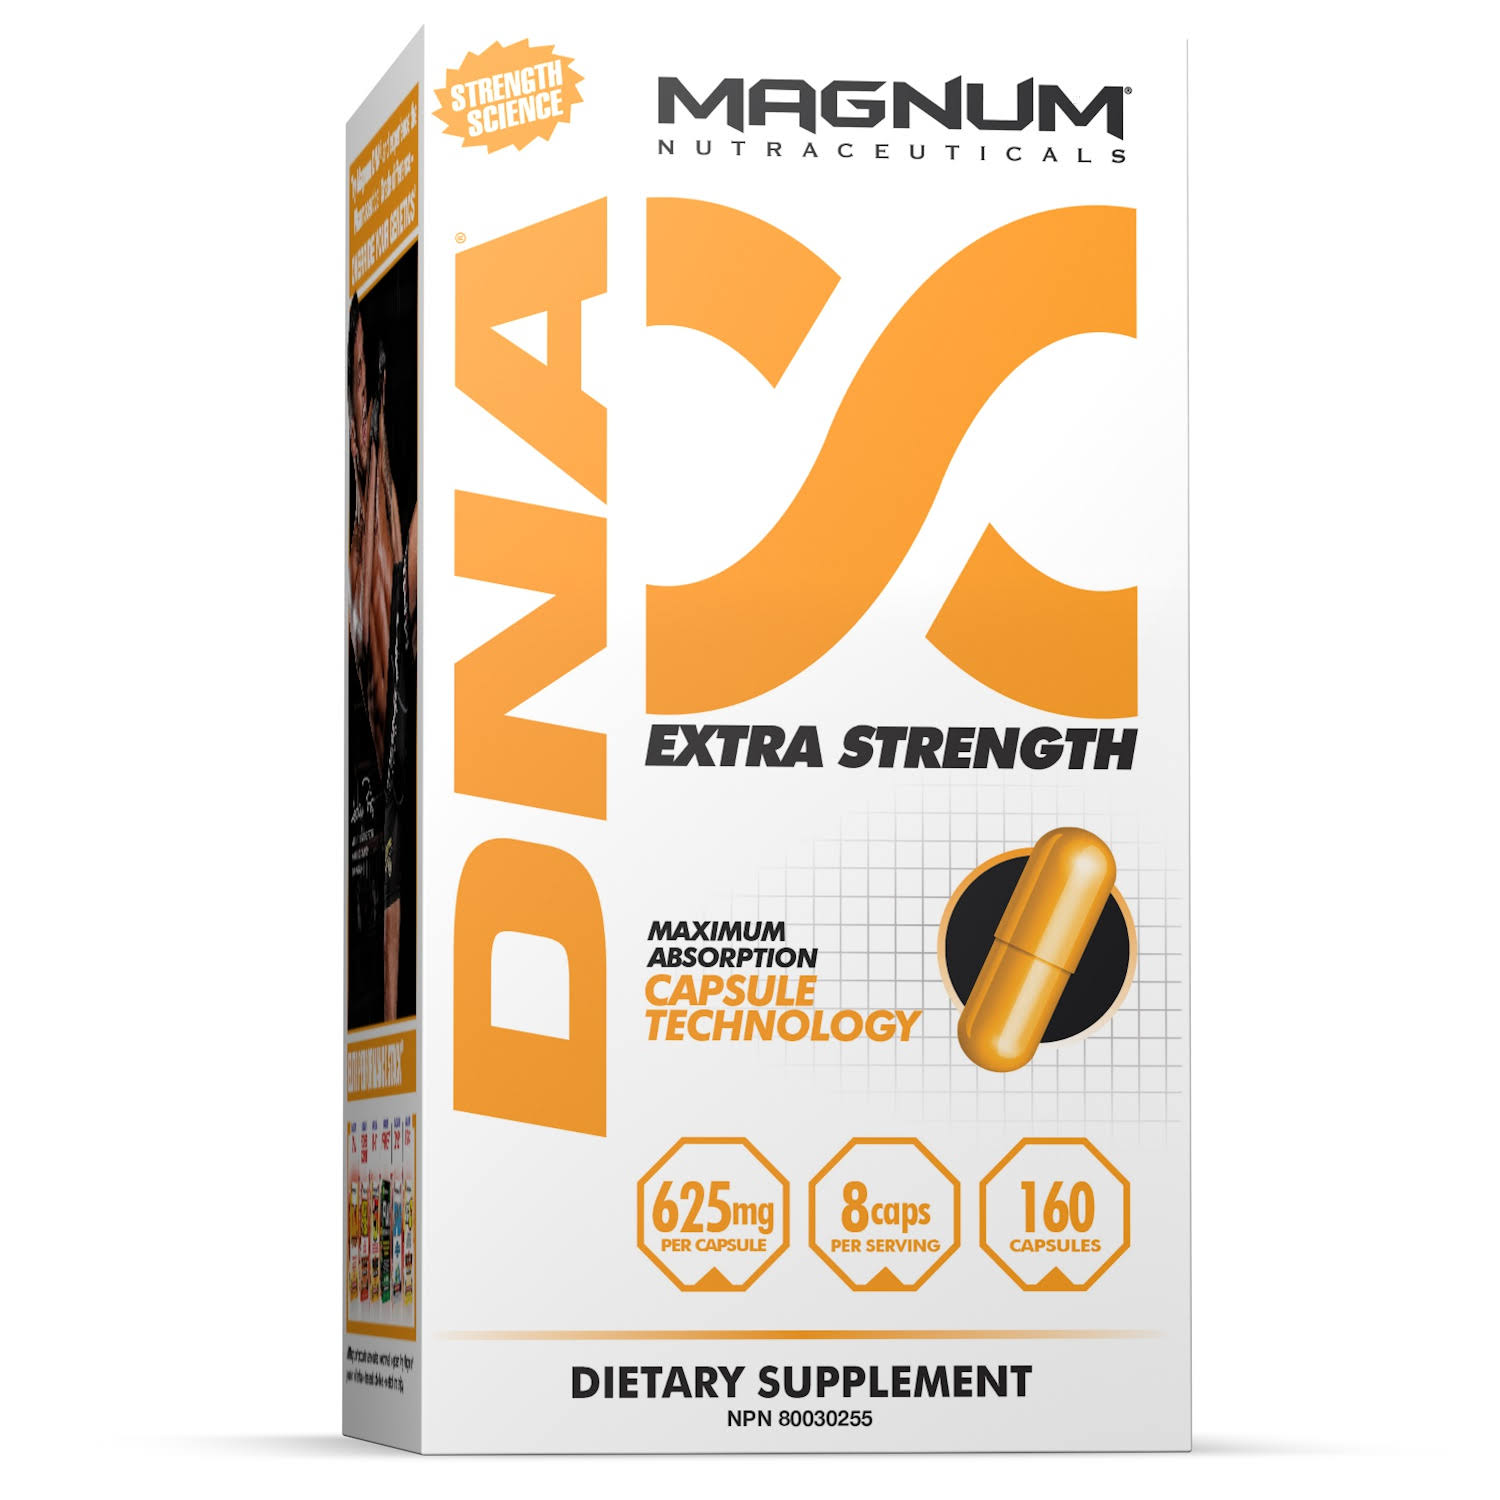 Magnum Nutraceuticals DNA Supplement - 160 Capsules